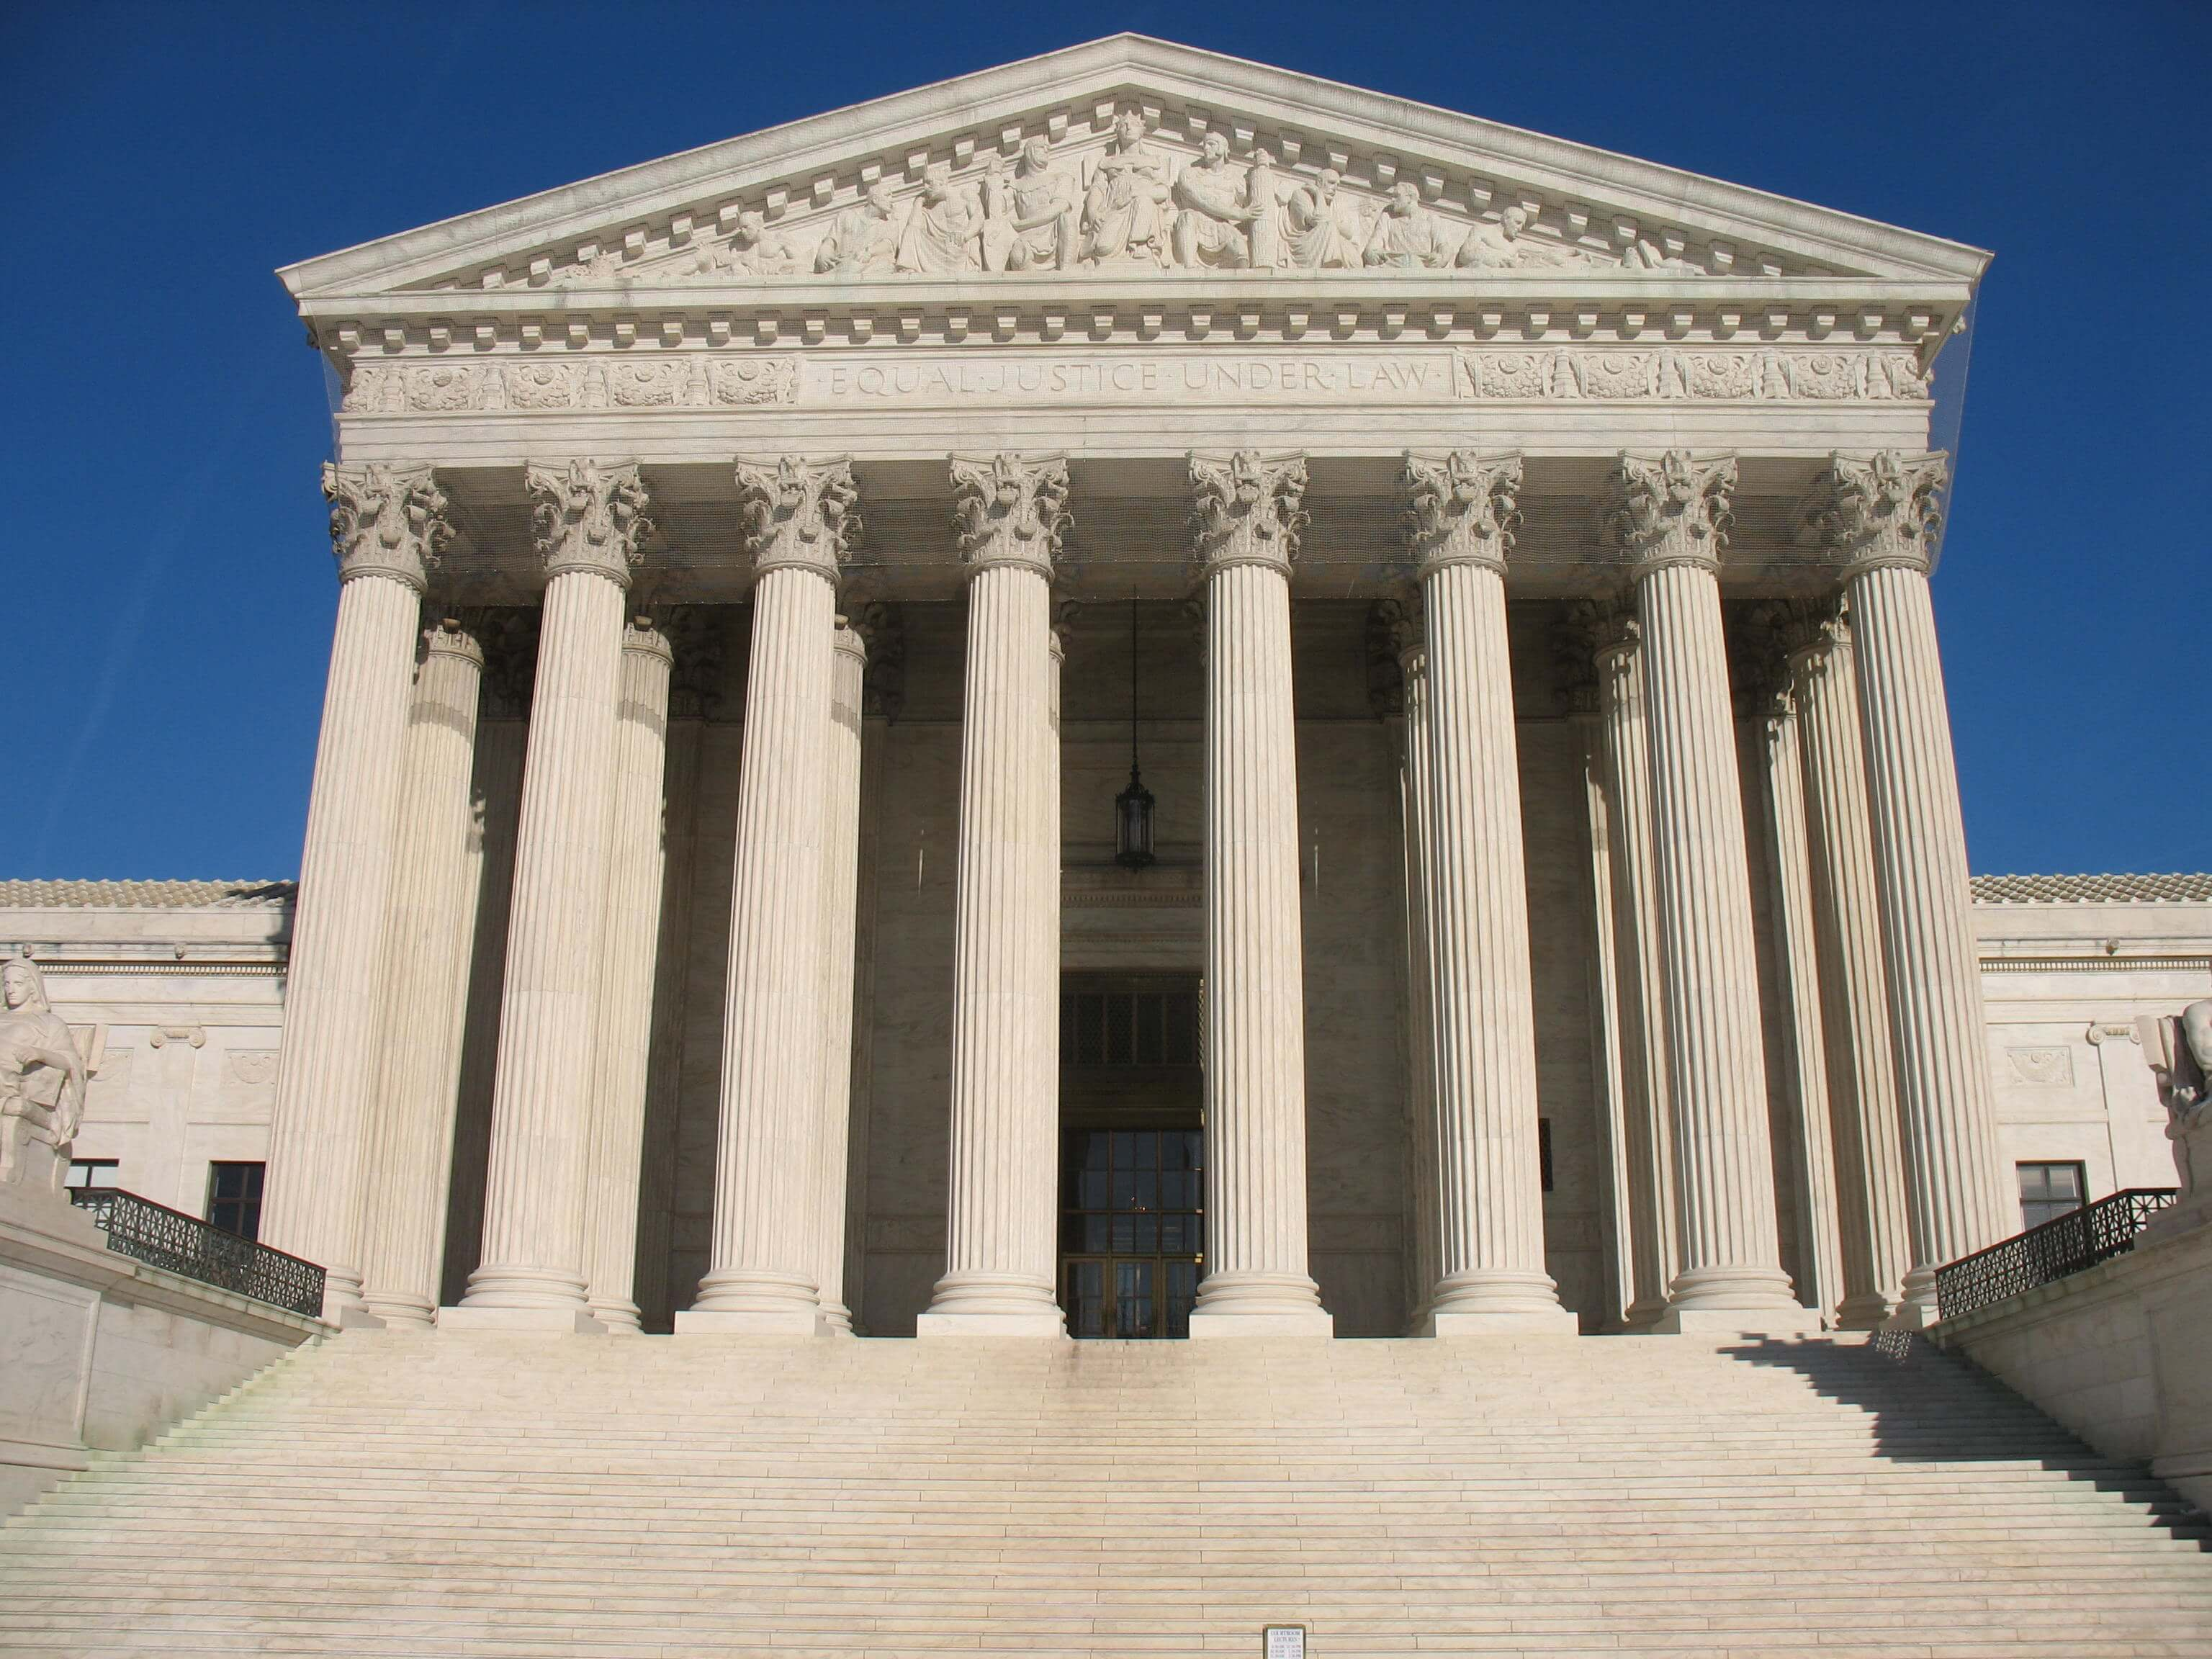 Myriad BRCA patents under review by SCOTUS